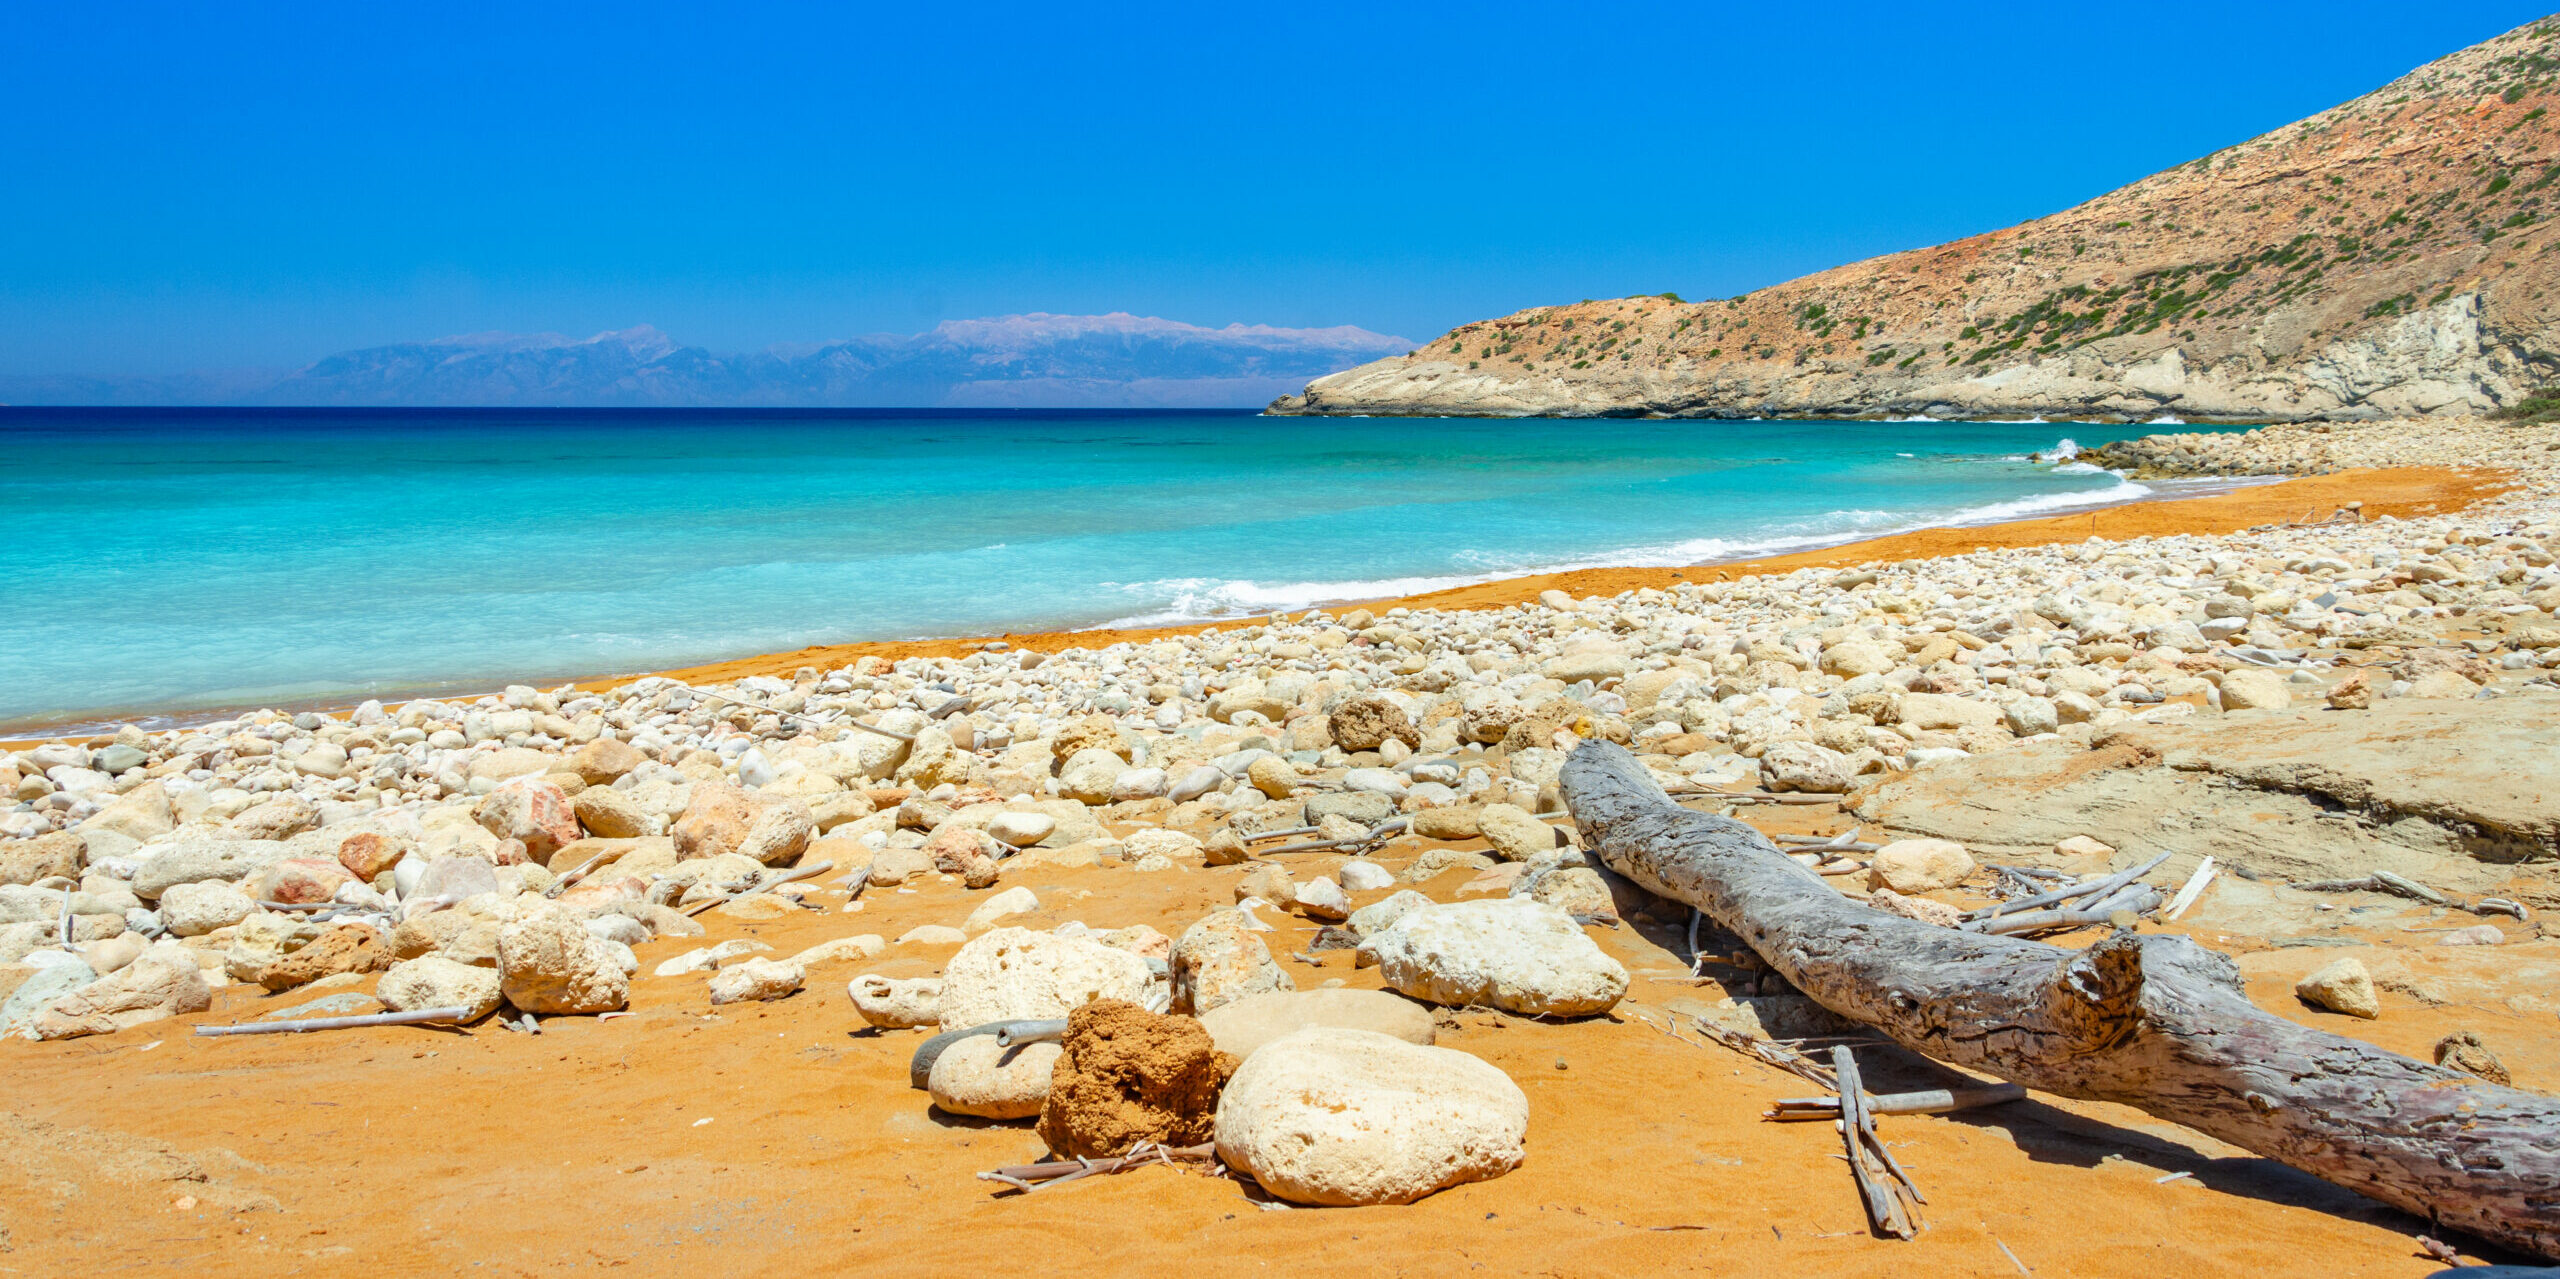 Gavdos island – just sit and enjoy the view